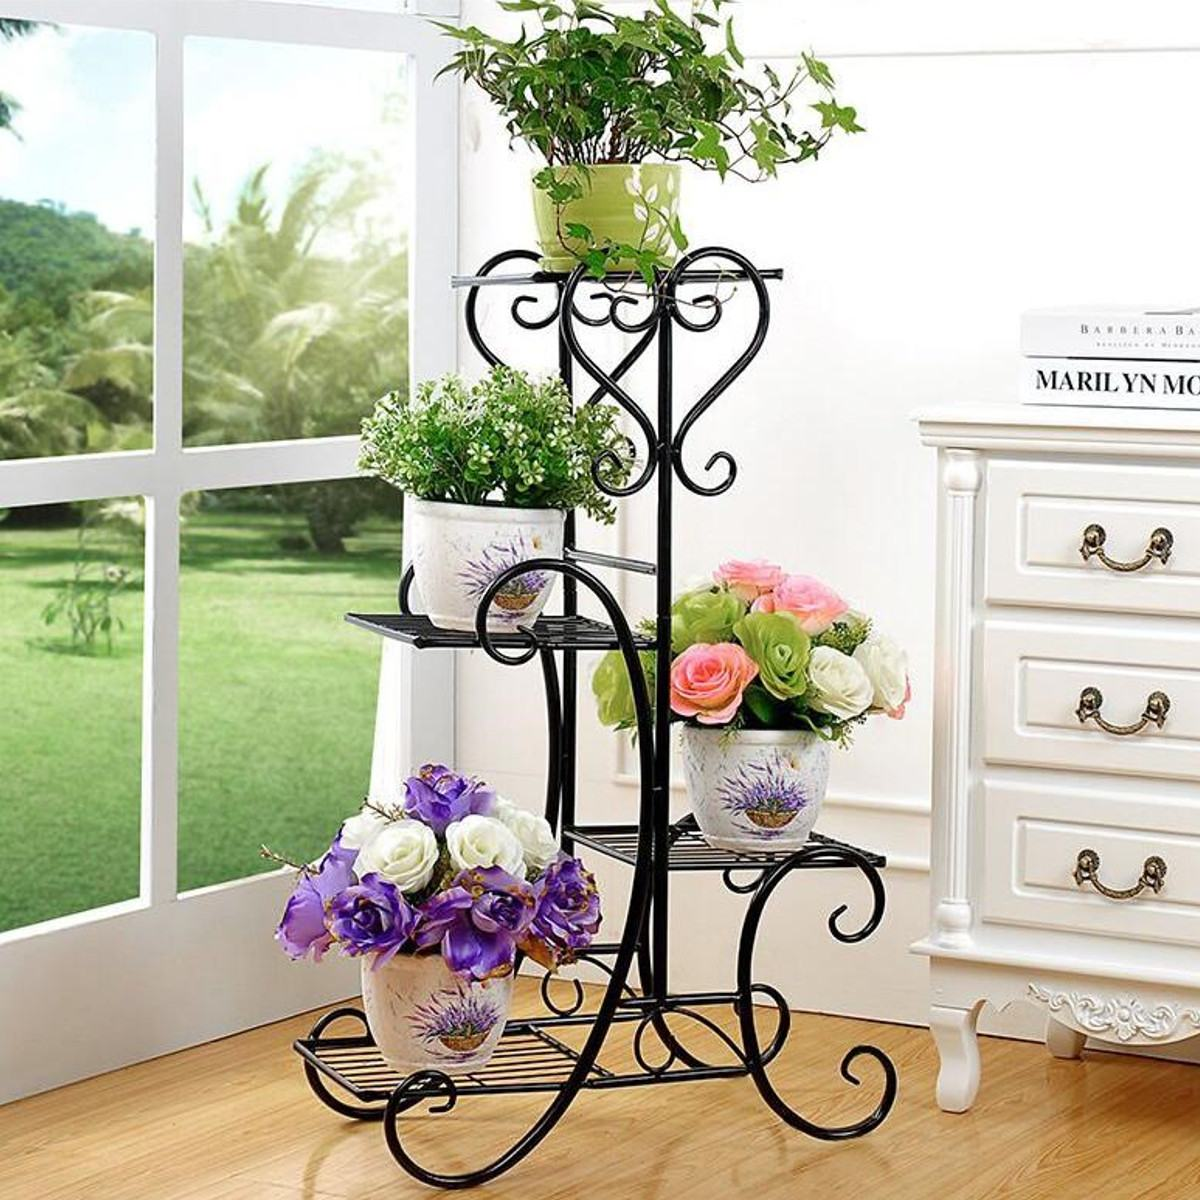 84x48x25cm 4 Tiers Metal Flower Plant Display Stand Black Home Garden Indoor Outdoor Plant Flower Pot Storage Rack Corner Shelf